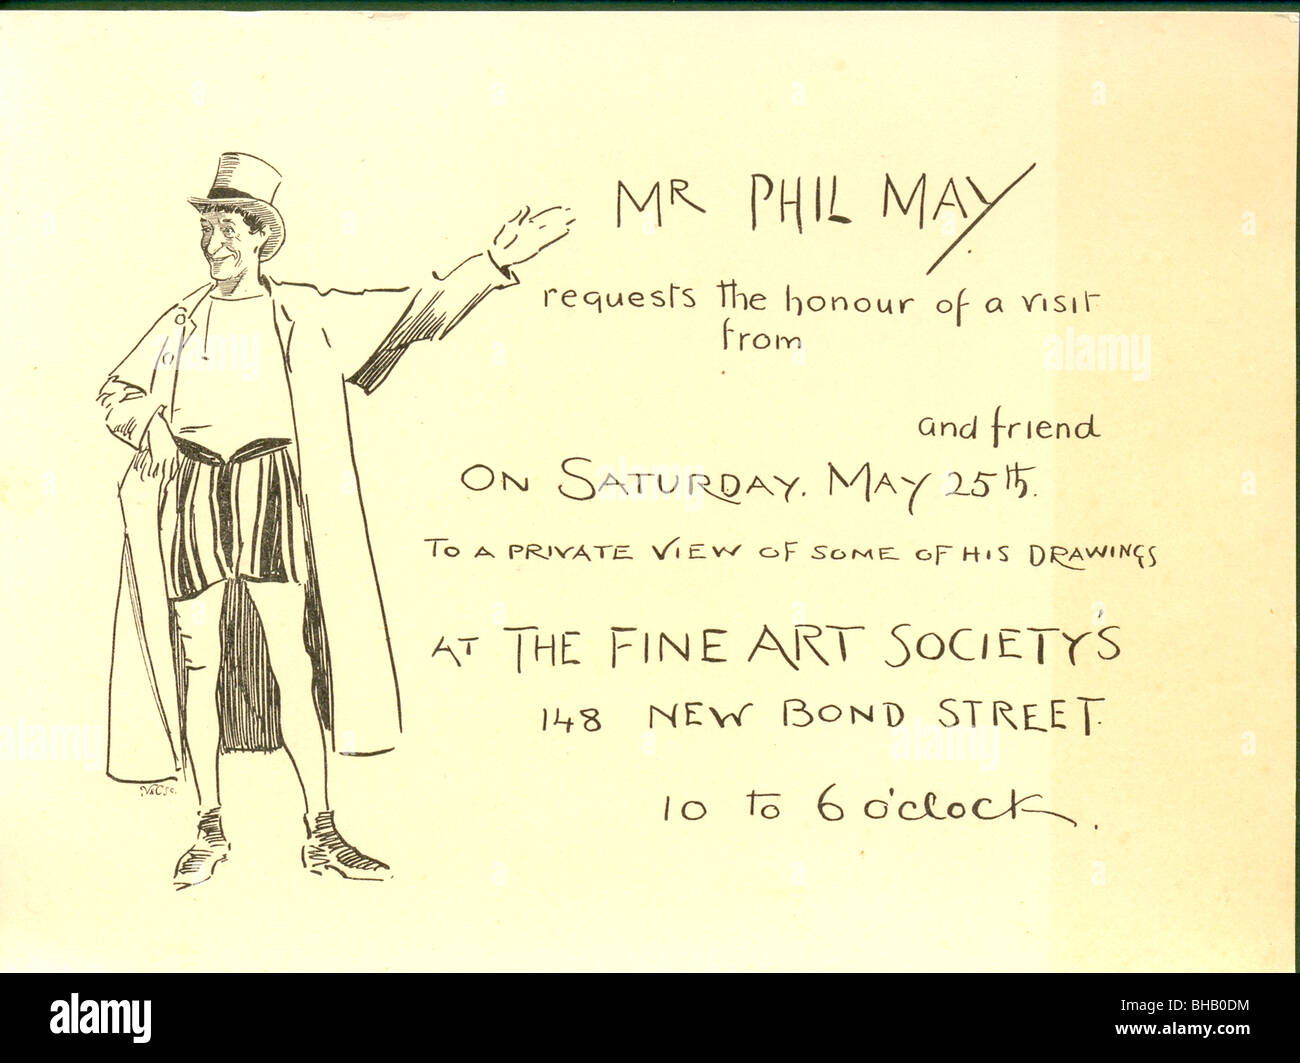 Invitation from Phil May to his first exhibition at The Fine Art Society, - Stock Image